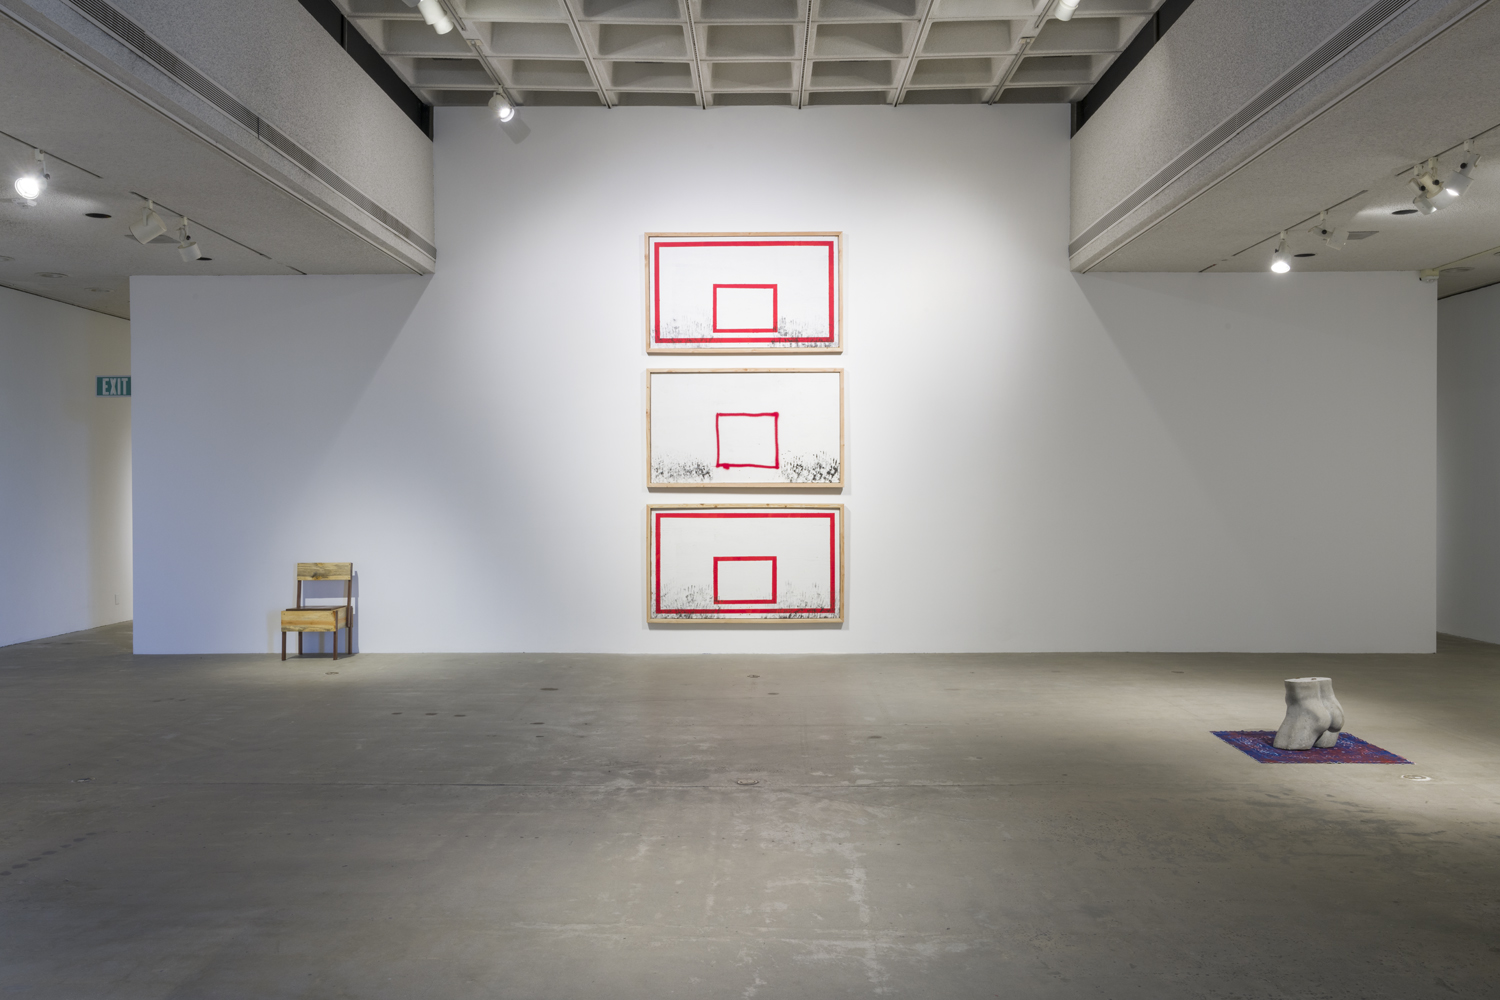 In this artwork installation by the artist David Alekhuogie, one artwork is a wooden sculpture of a low-sitting chair with rectangular, blocky shapes. To the right of this work, are three, vertically hanging artworks that resemble basketball backboards. In these works, there are various numbers of black handprints towards the bottom edge of the artworks. The background for these works is white with red outlines for the frame and rim. To the right of these works is a concrete, naked bust of a male mannequin figure. This artwork is placed on top of another artwork that depicts a blue bandana with red paint splattered on it.